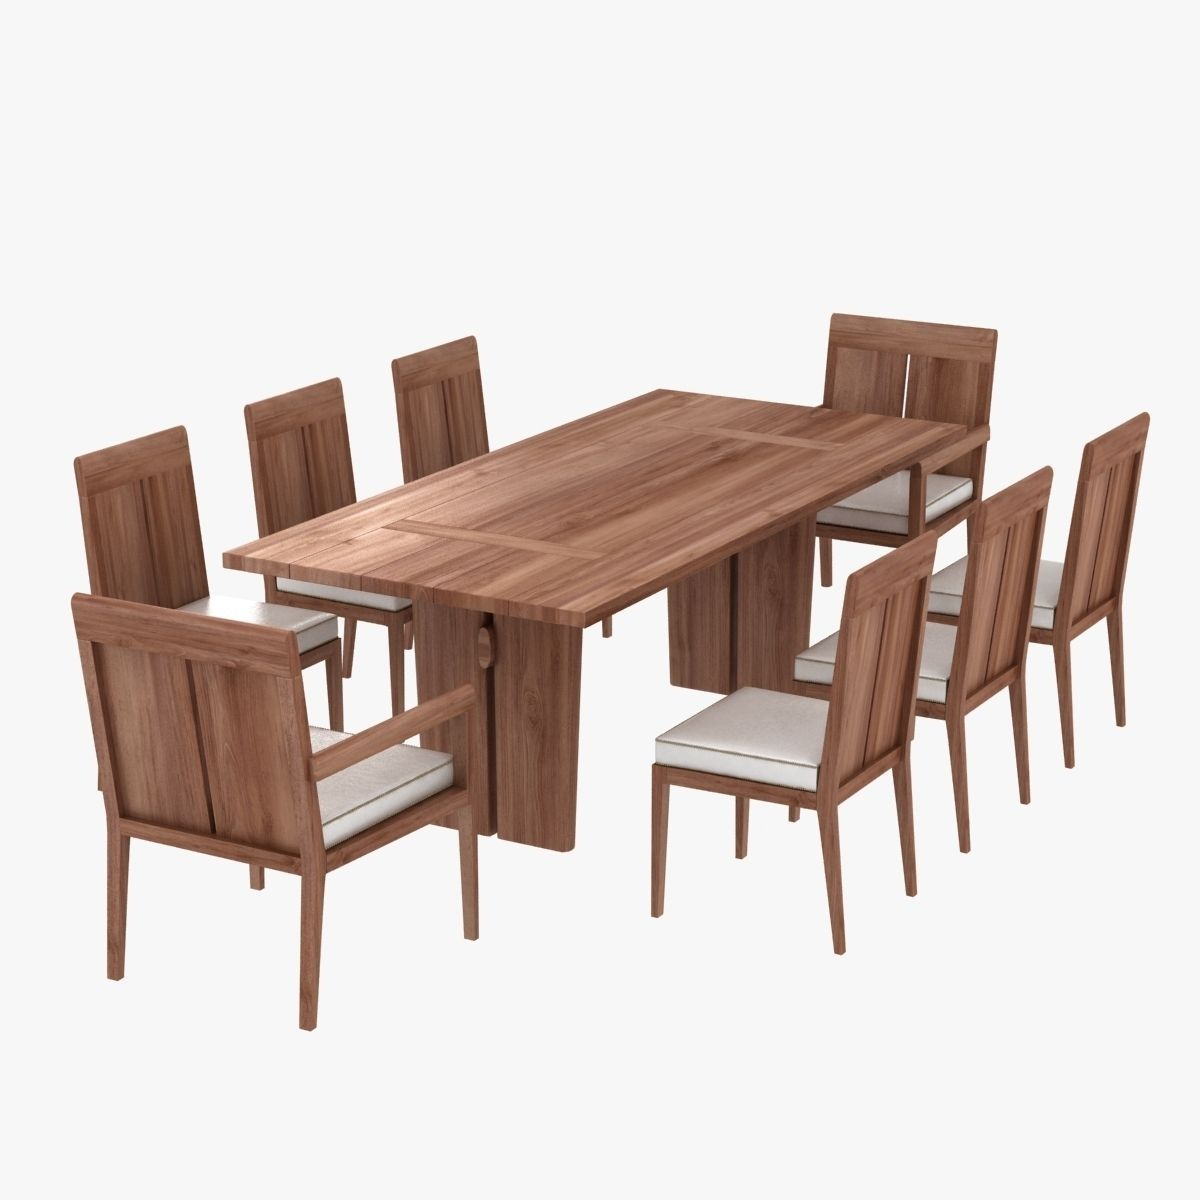 a85dfde98f link outdoor sand dollar table and chairs 3D model MAX BIP OBJ MTL ...